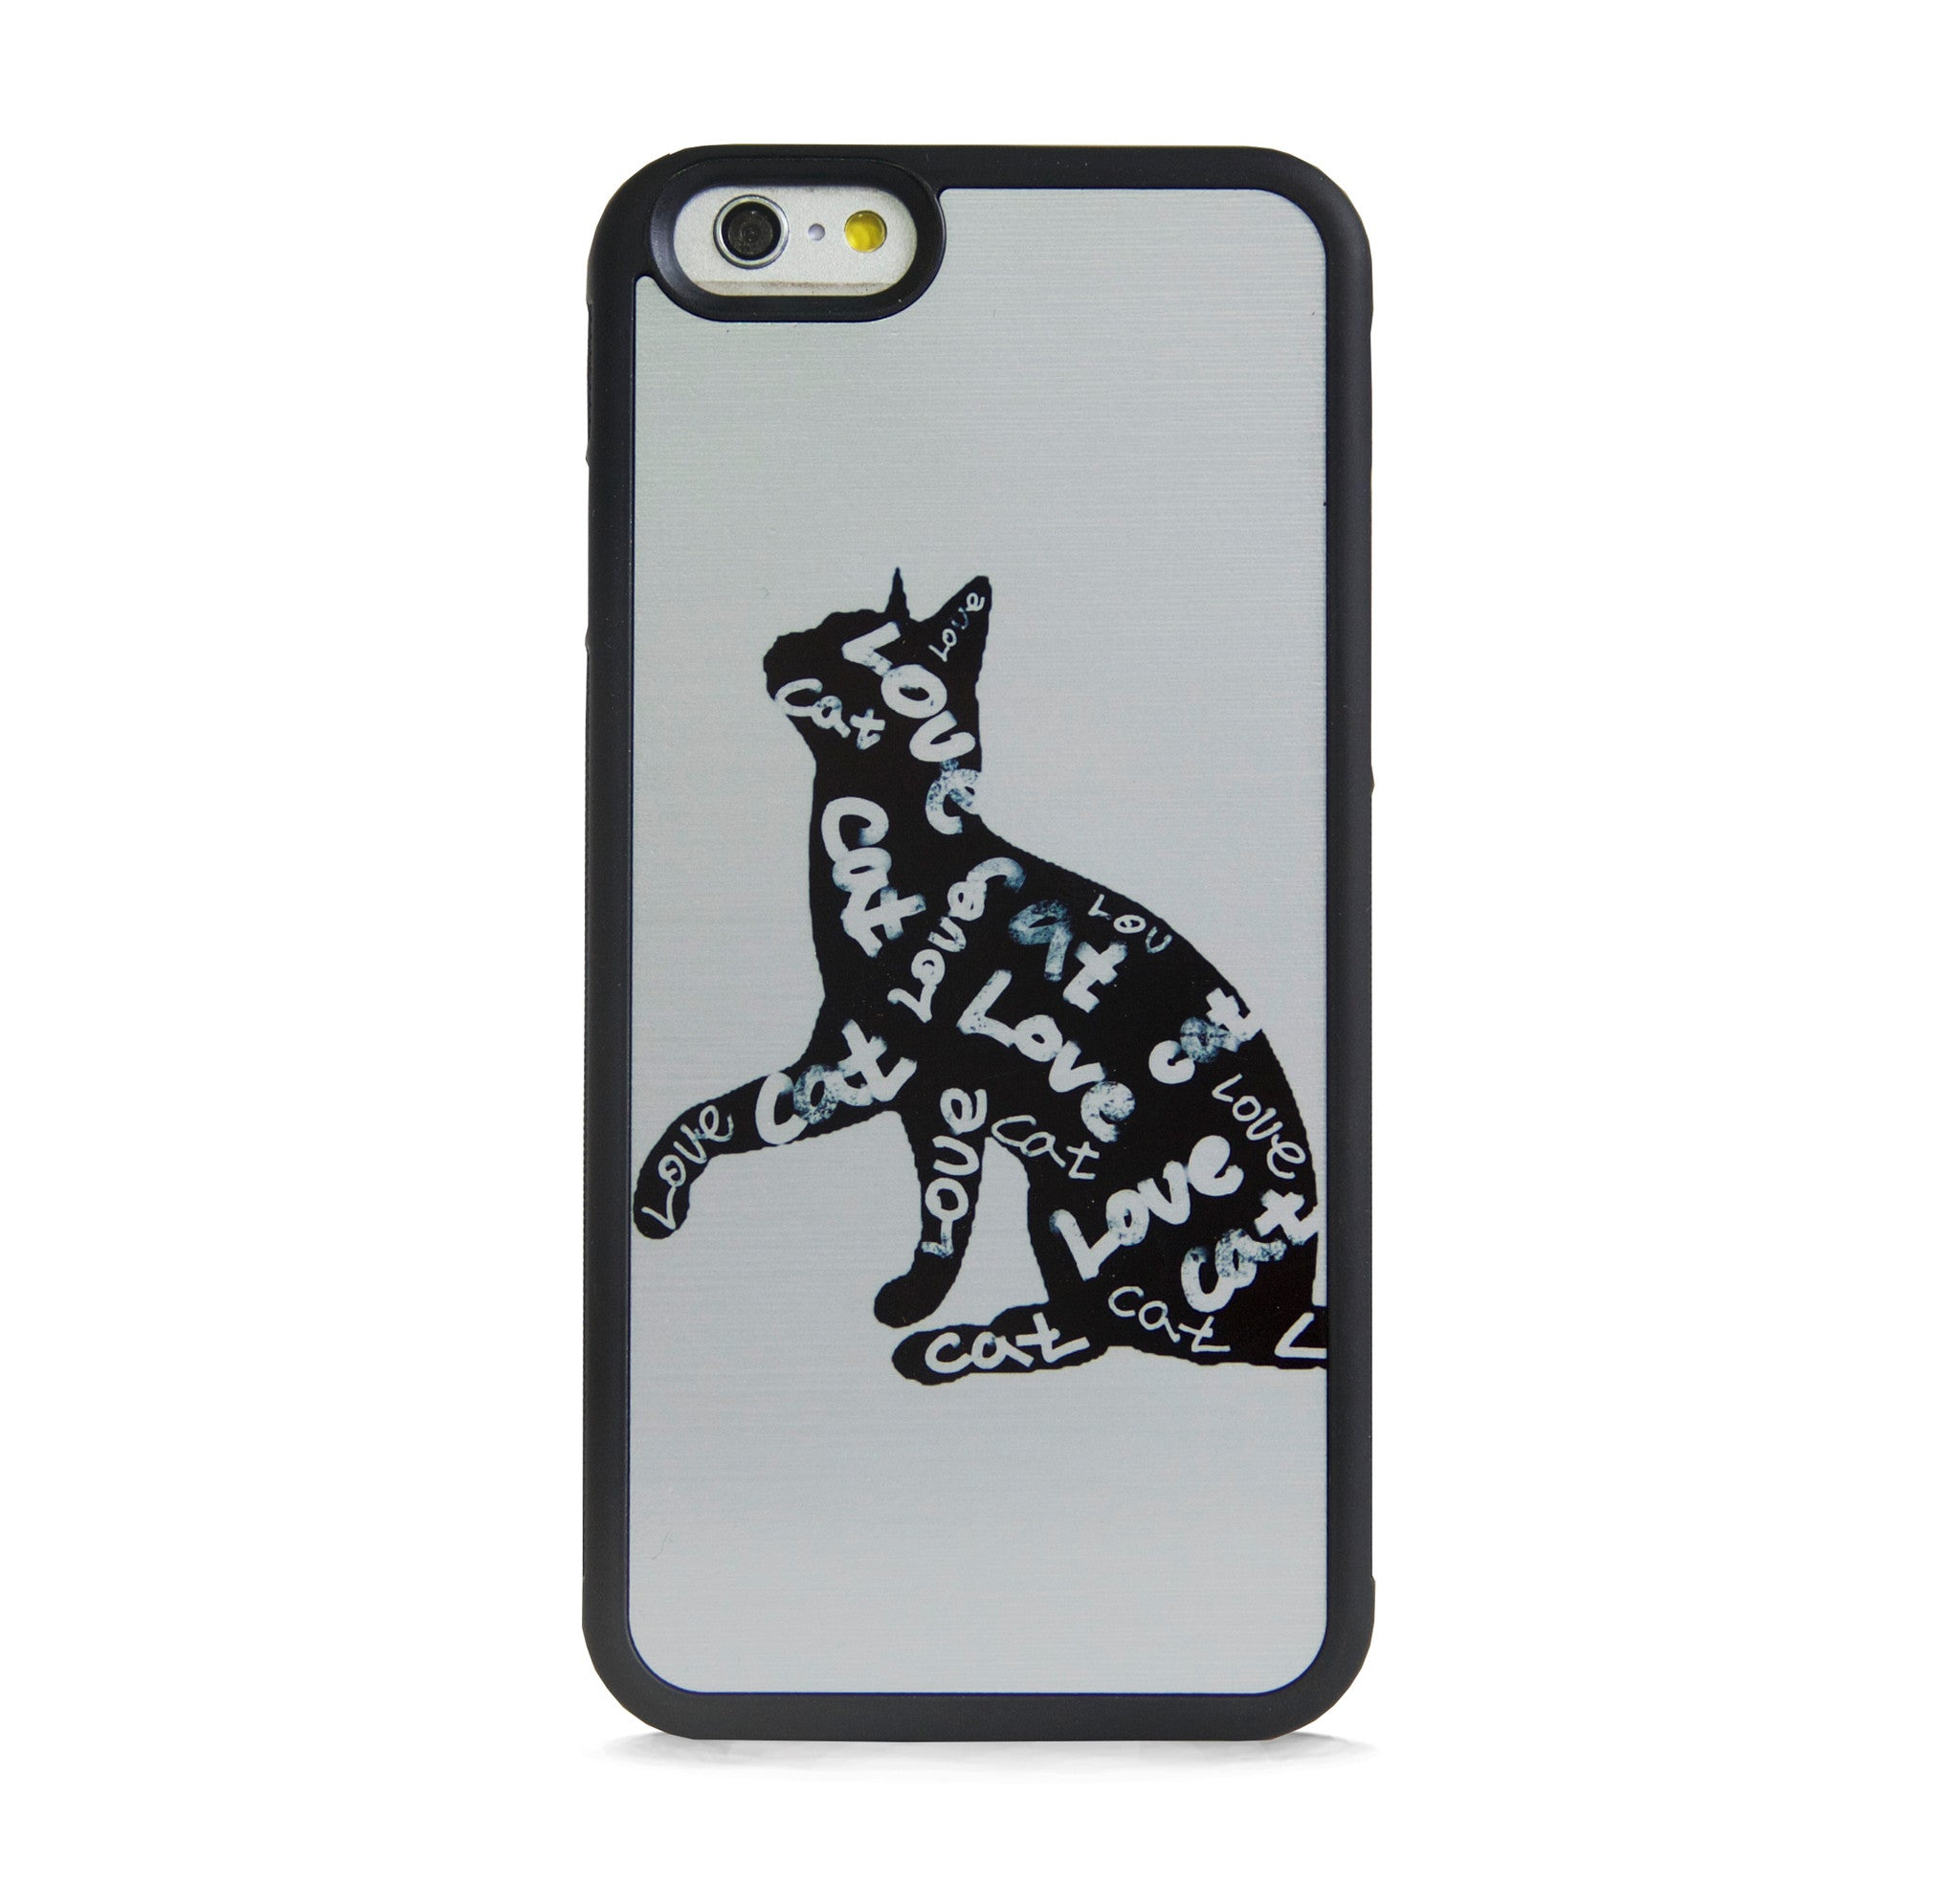 ILLUST TYPO LOVE CATS ON SILVER FOR IPHONE 6/6s